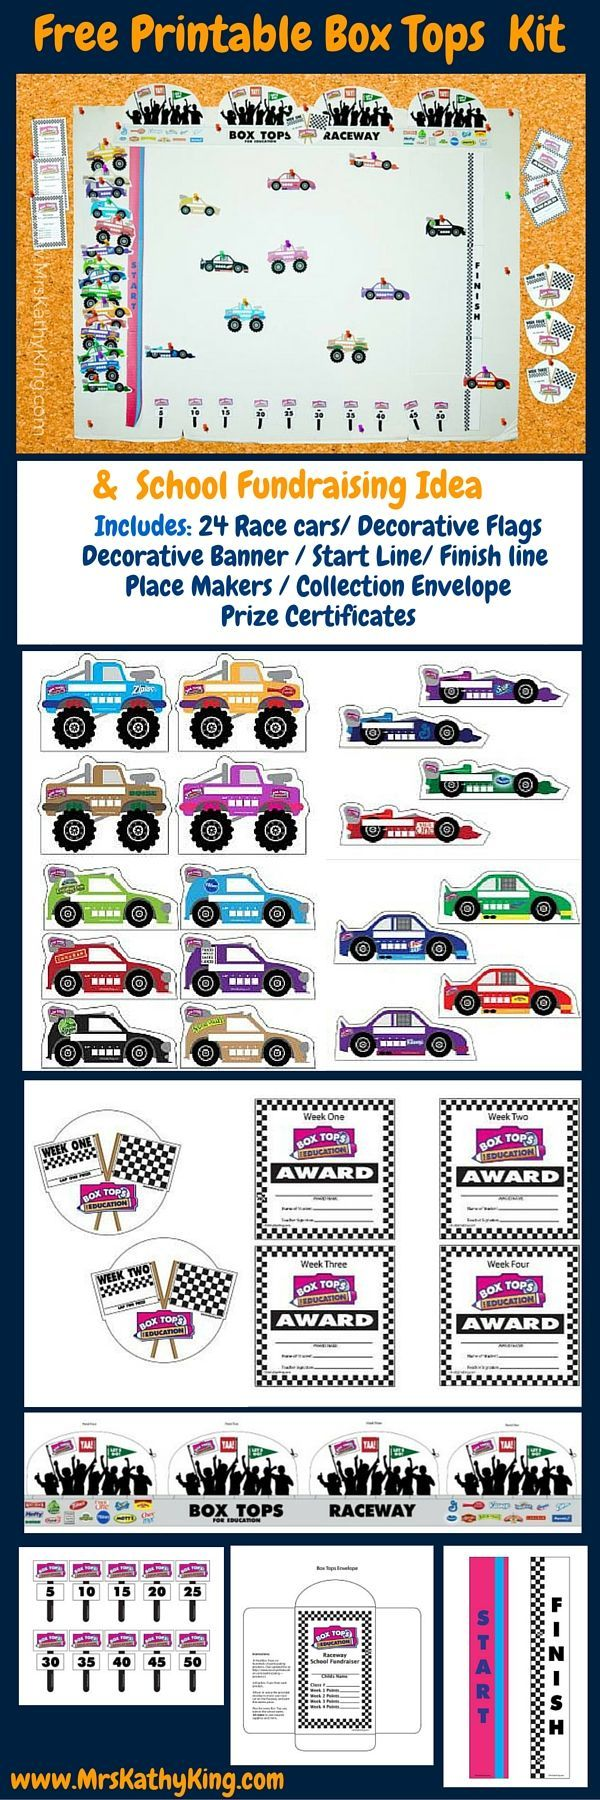 Are you looking for Box Tops For Education School Fundraising Idea that will get the whole class involved? Our Free Printable Box Tops School Fundraising Idea & Kit includes Includes: 24 Race cars/ Decorative Flags Decorative Banner / Start Line/ Finish line Place Makers / Collection Envelope Prize Certificates #BTFE